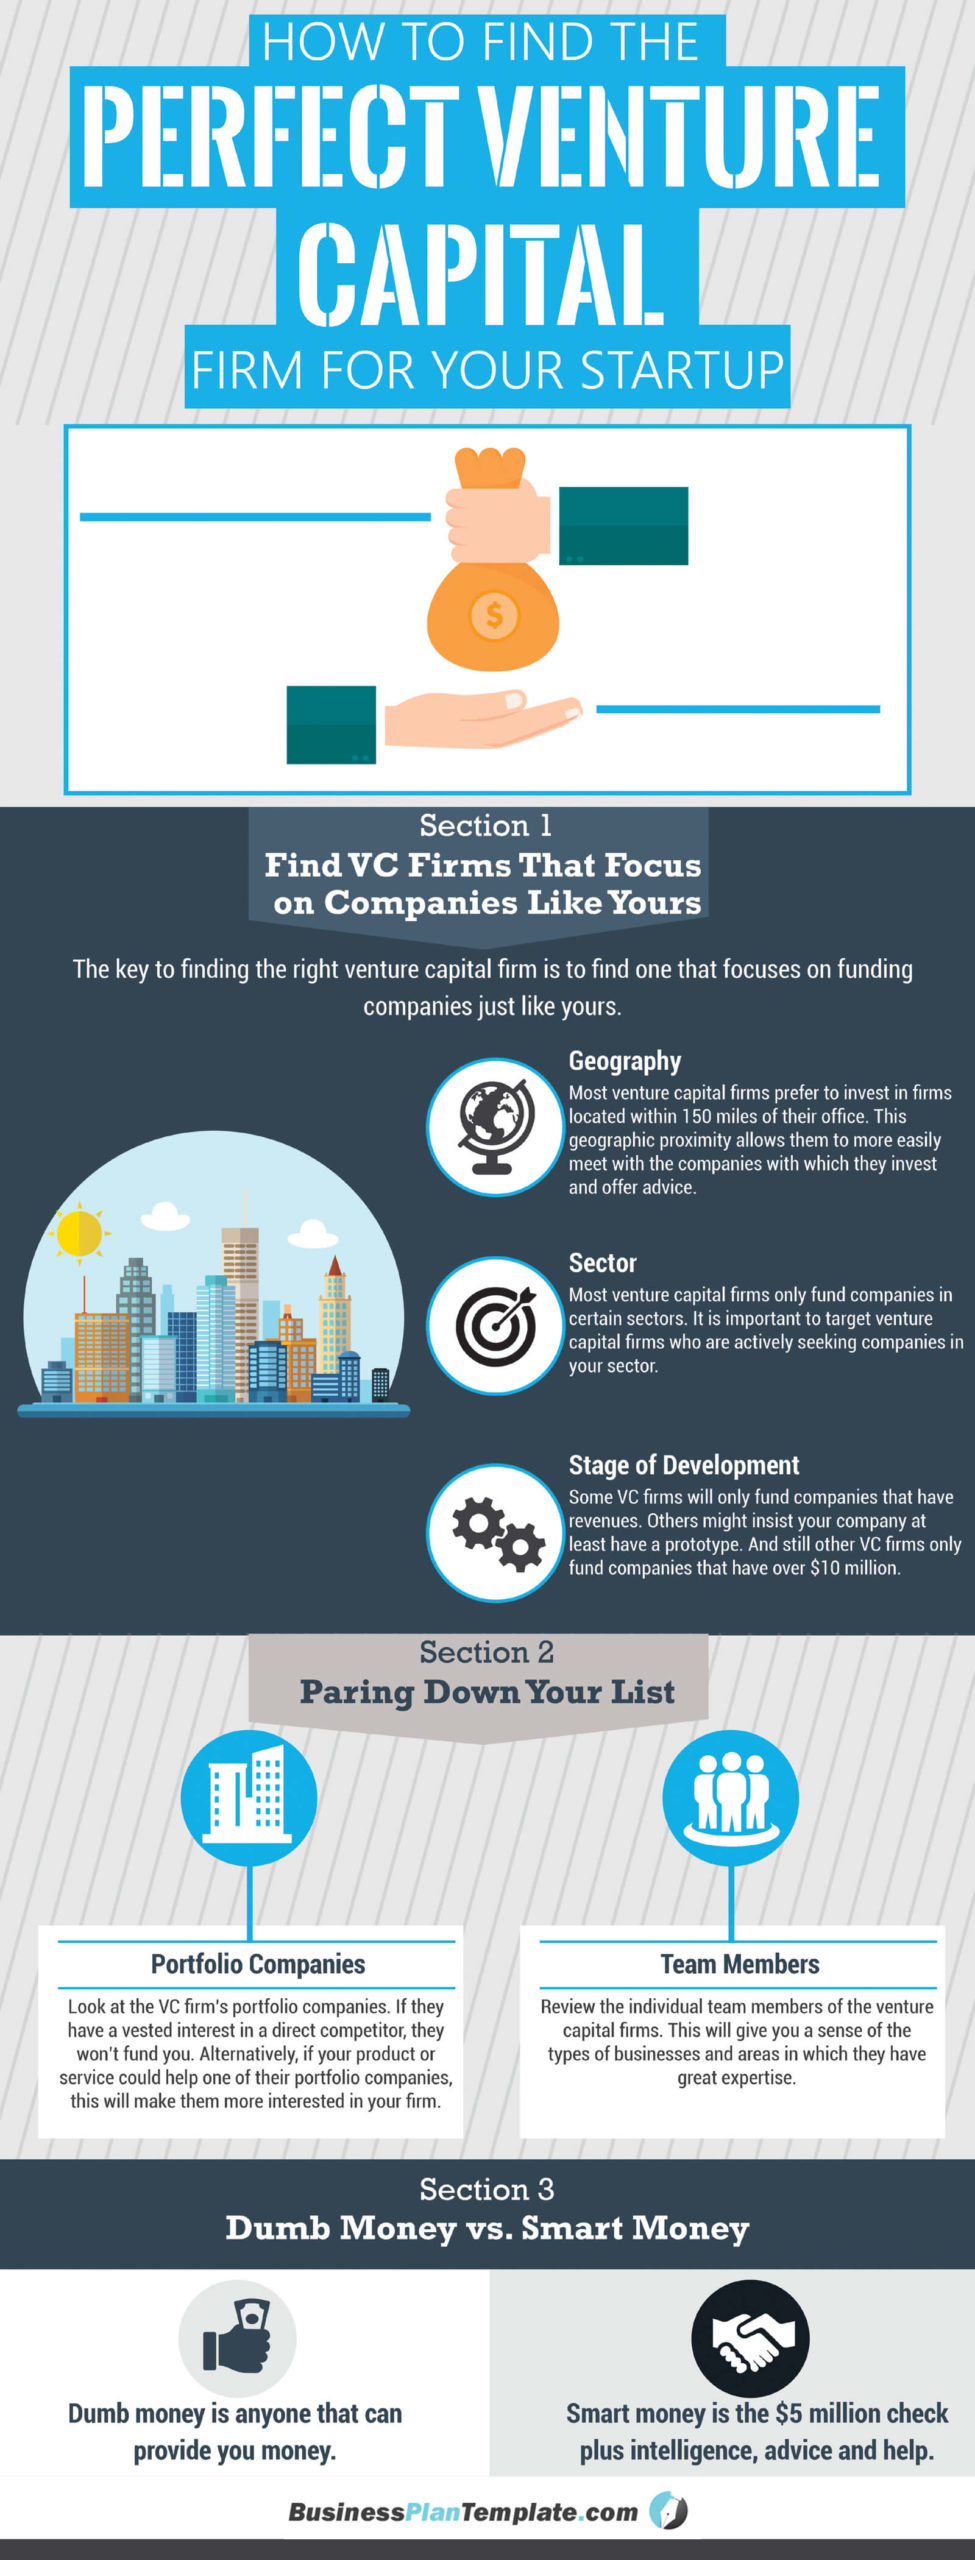 How_to_Find_the_Perfect_Venture_Capital_Firm_for_Your_Startup_Infographic